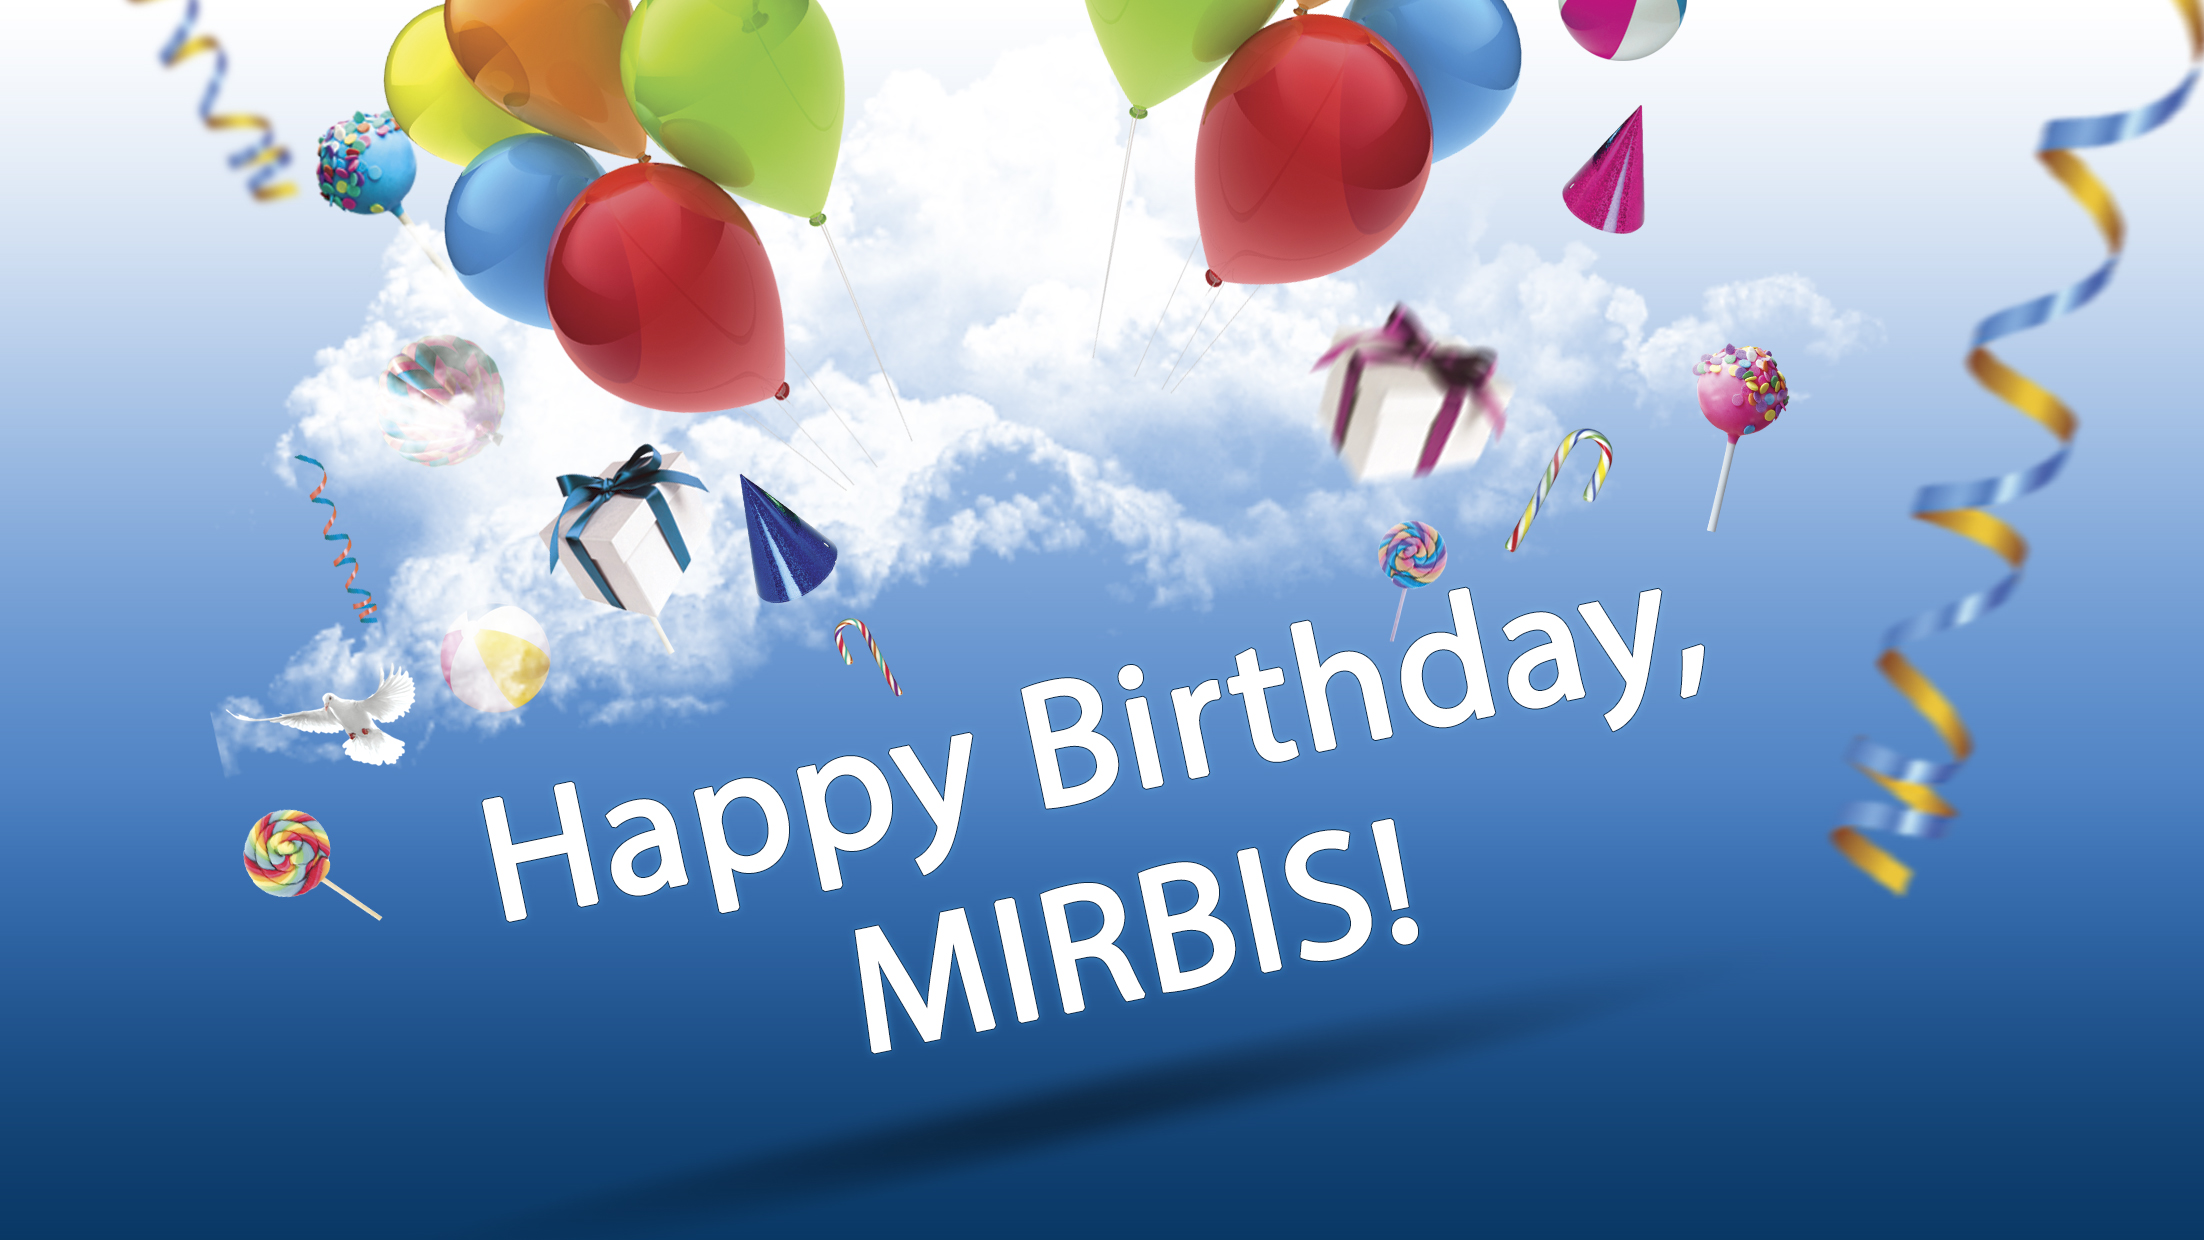 Happy 29th birthday, MIRBIS Institute!